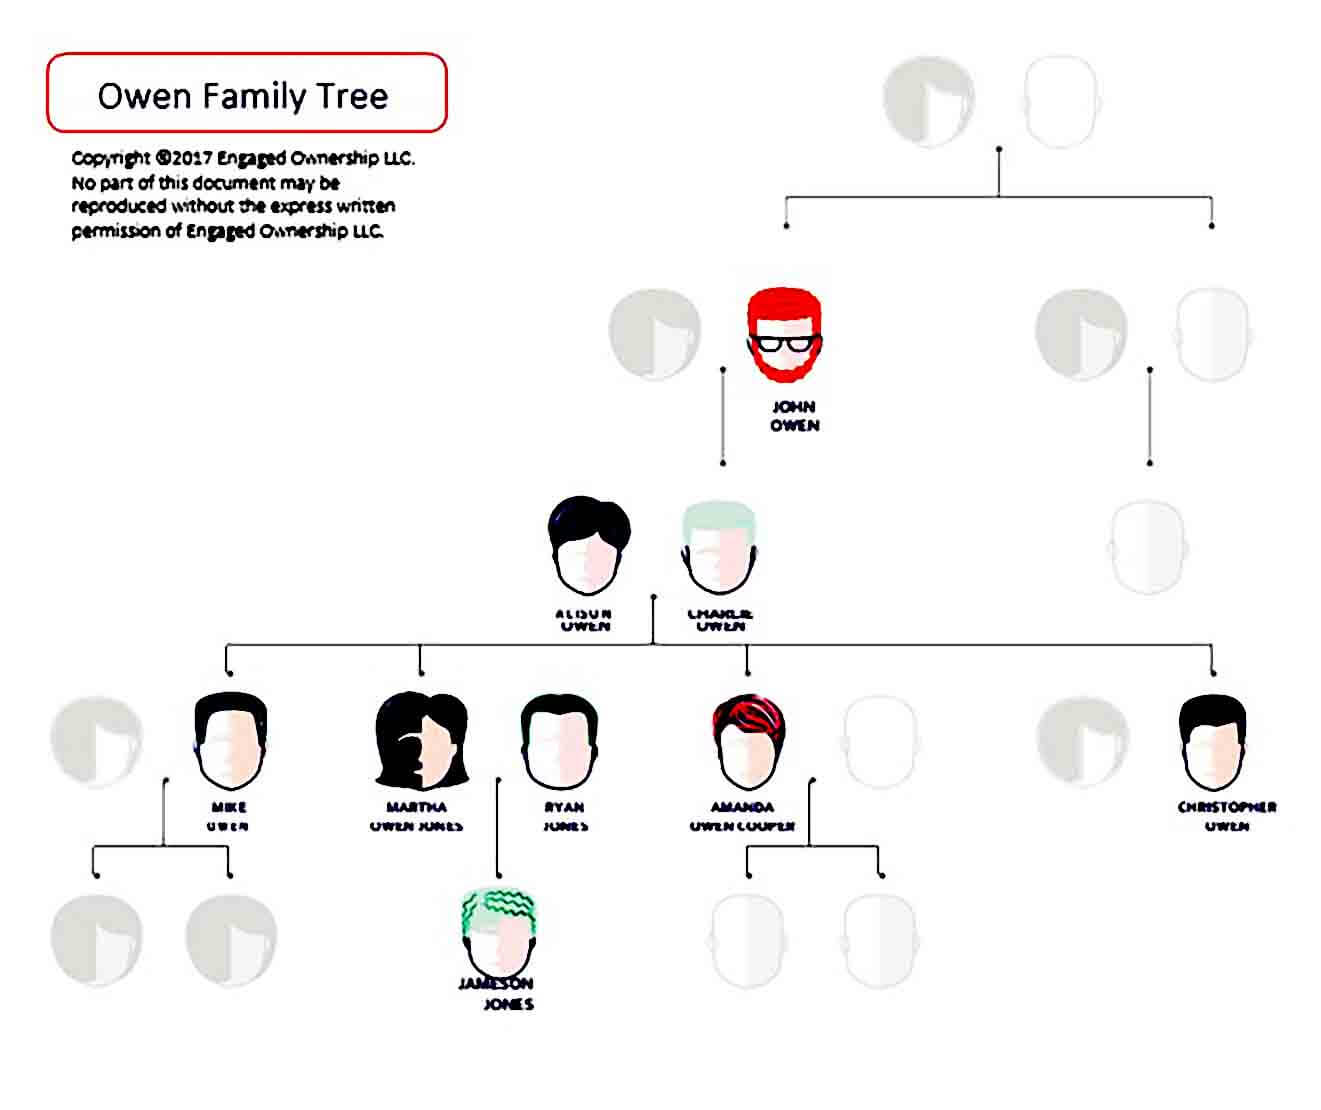 Family Tree Layout to Print